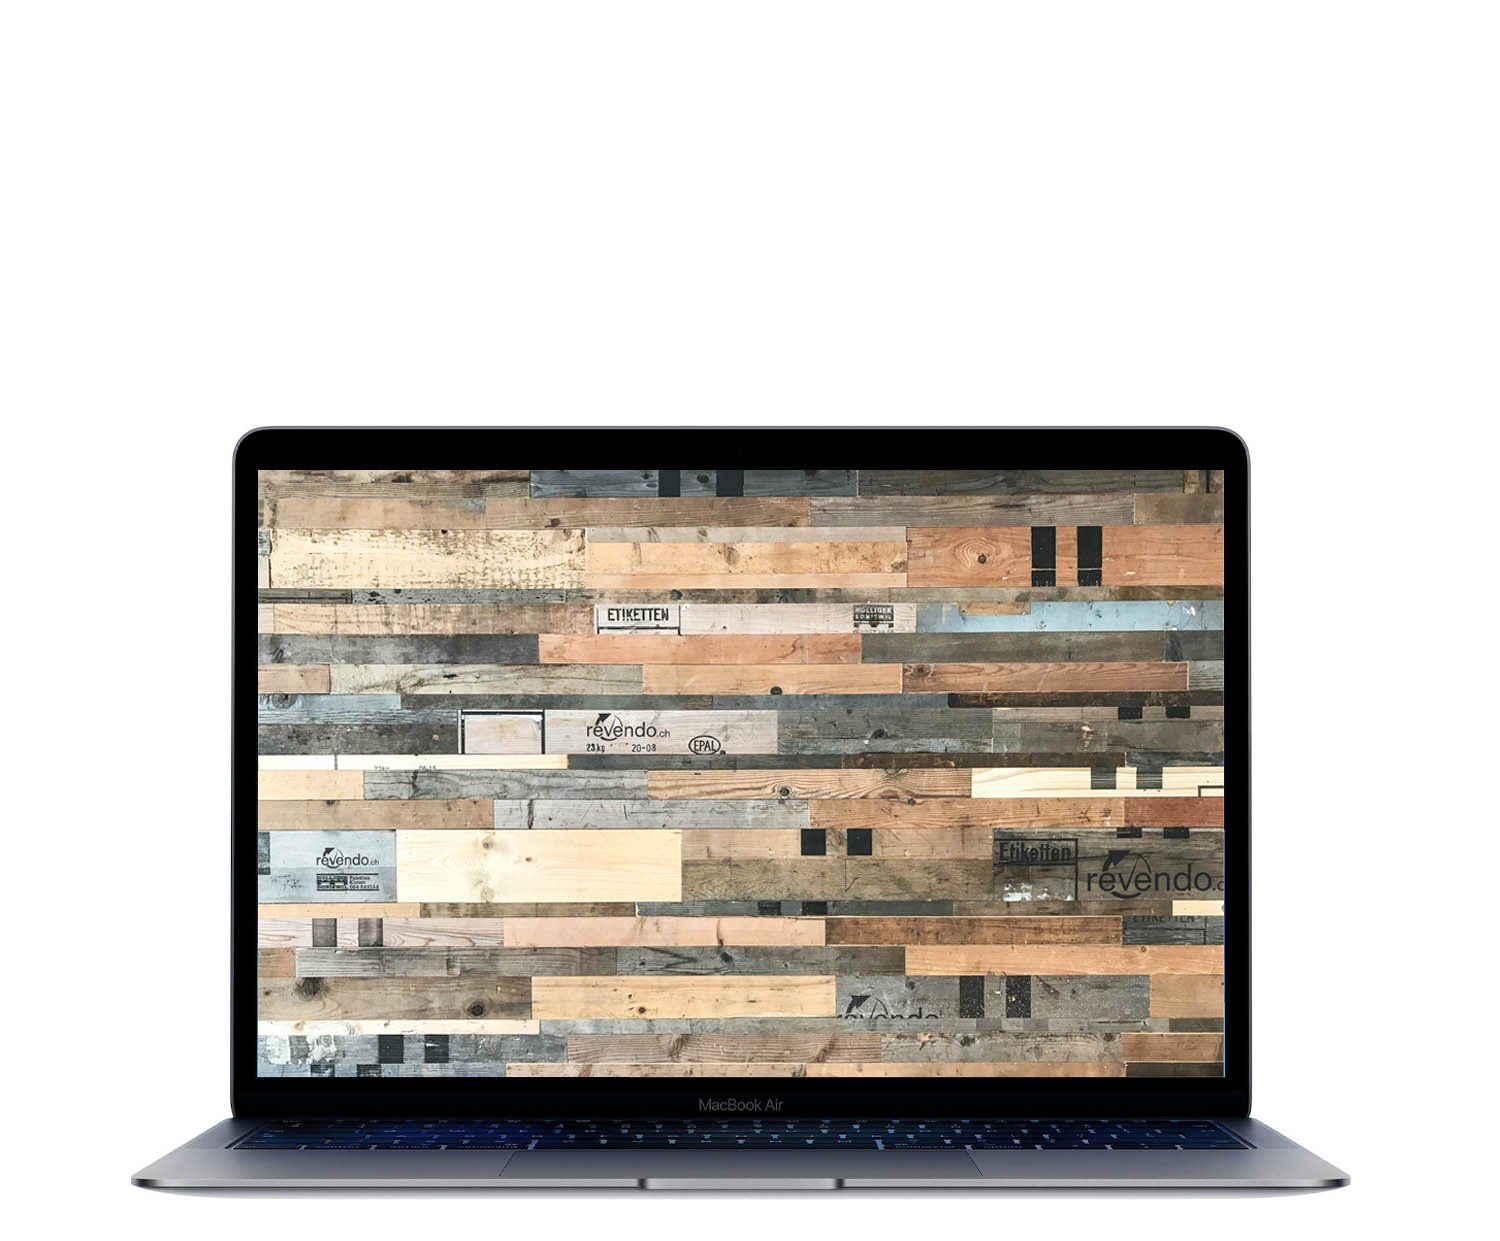 macbook air 13 3 1 6 ghz core i5 256 gb ssd. Black Bedroom Furniture Sets. Home Design Ideas